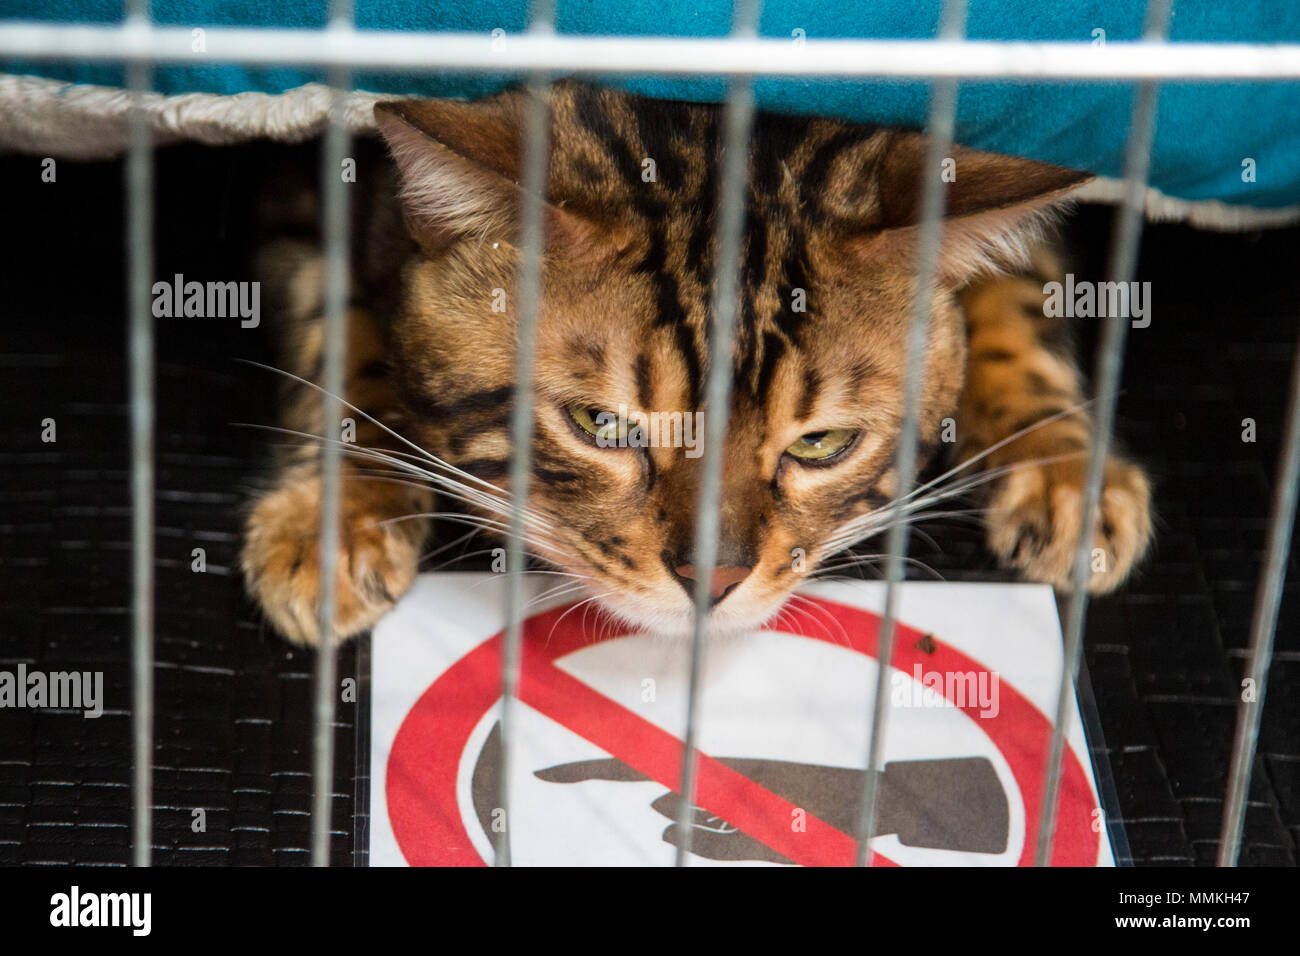 Dortmund, Germany. 12 May 2018. Bengal cat in a cage. One of the largest dog and cat shows Hund & Katz takes place with more than 8000 dogs from 250 different breeds from 11 to 13 May at Westfalenhallen trade fair in Dortmund. Credit: 51North/Alamy Live News - Stock Image